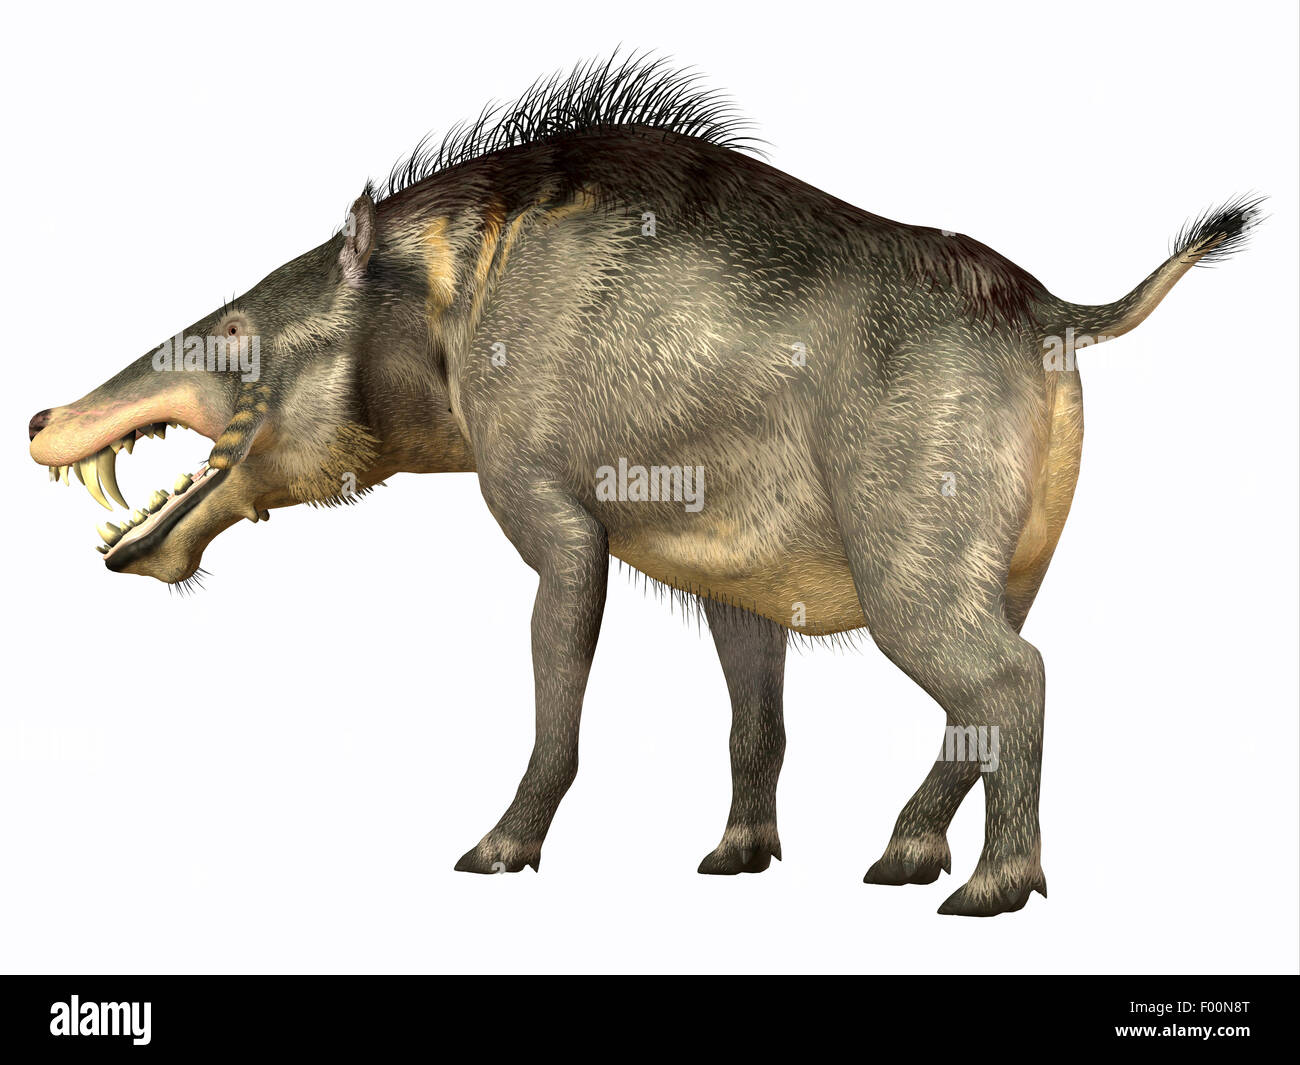 Entelodon was an omnivorous pig that lived in Europe and Asia in the Eocene through the Oligocene Periods. - Stock Image